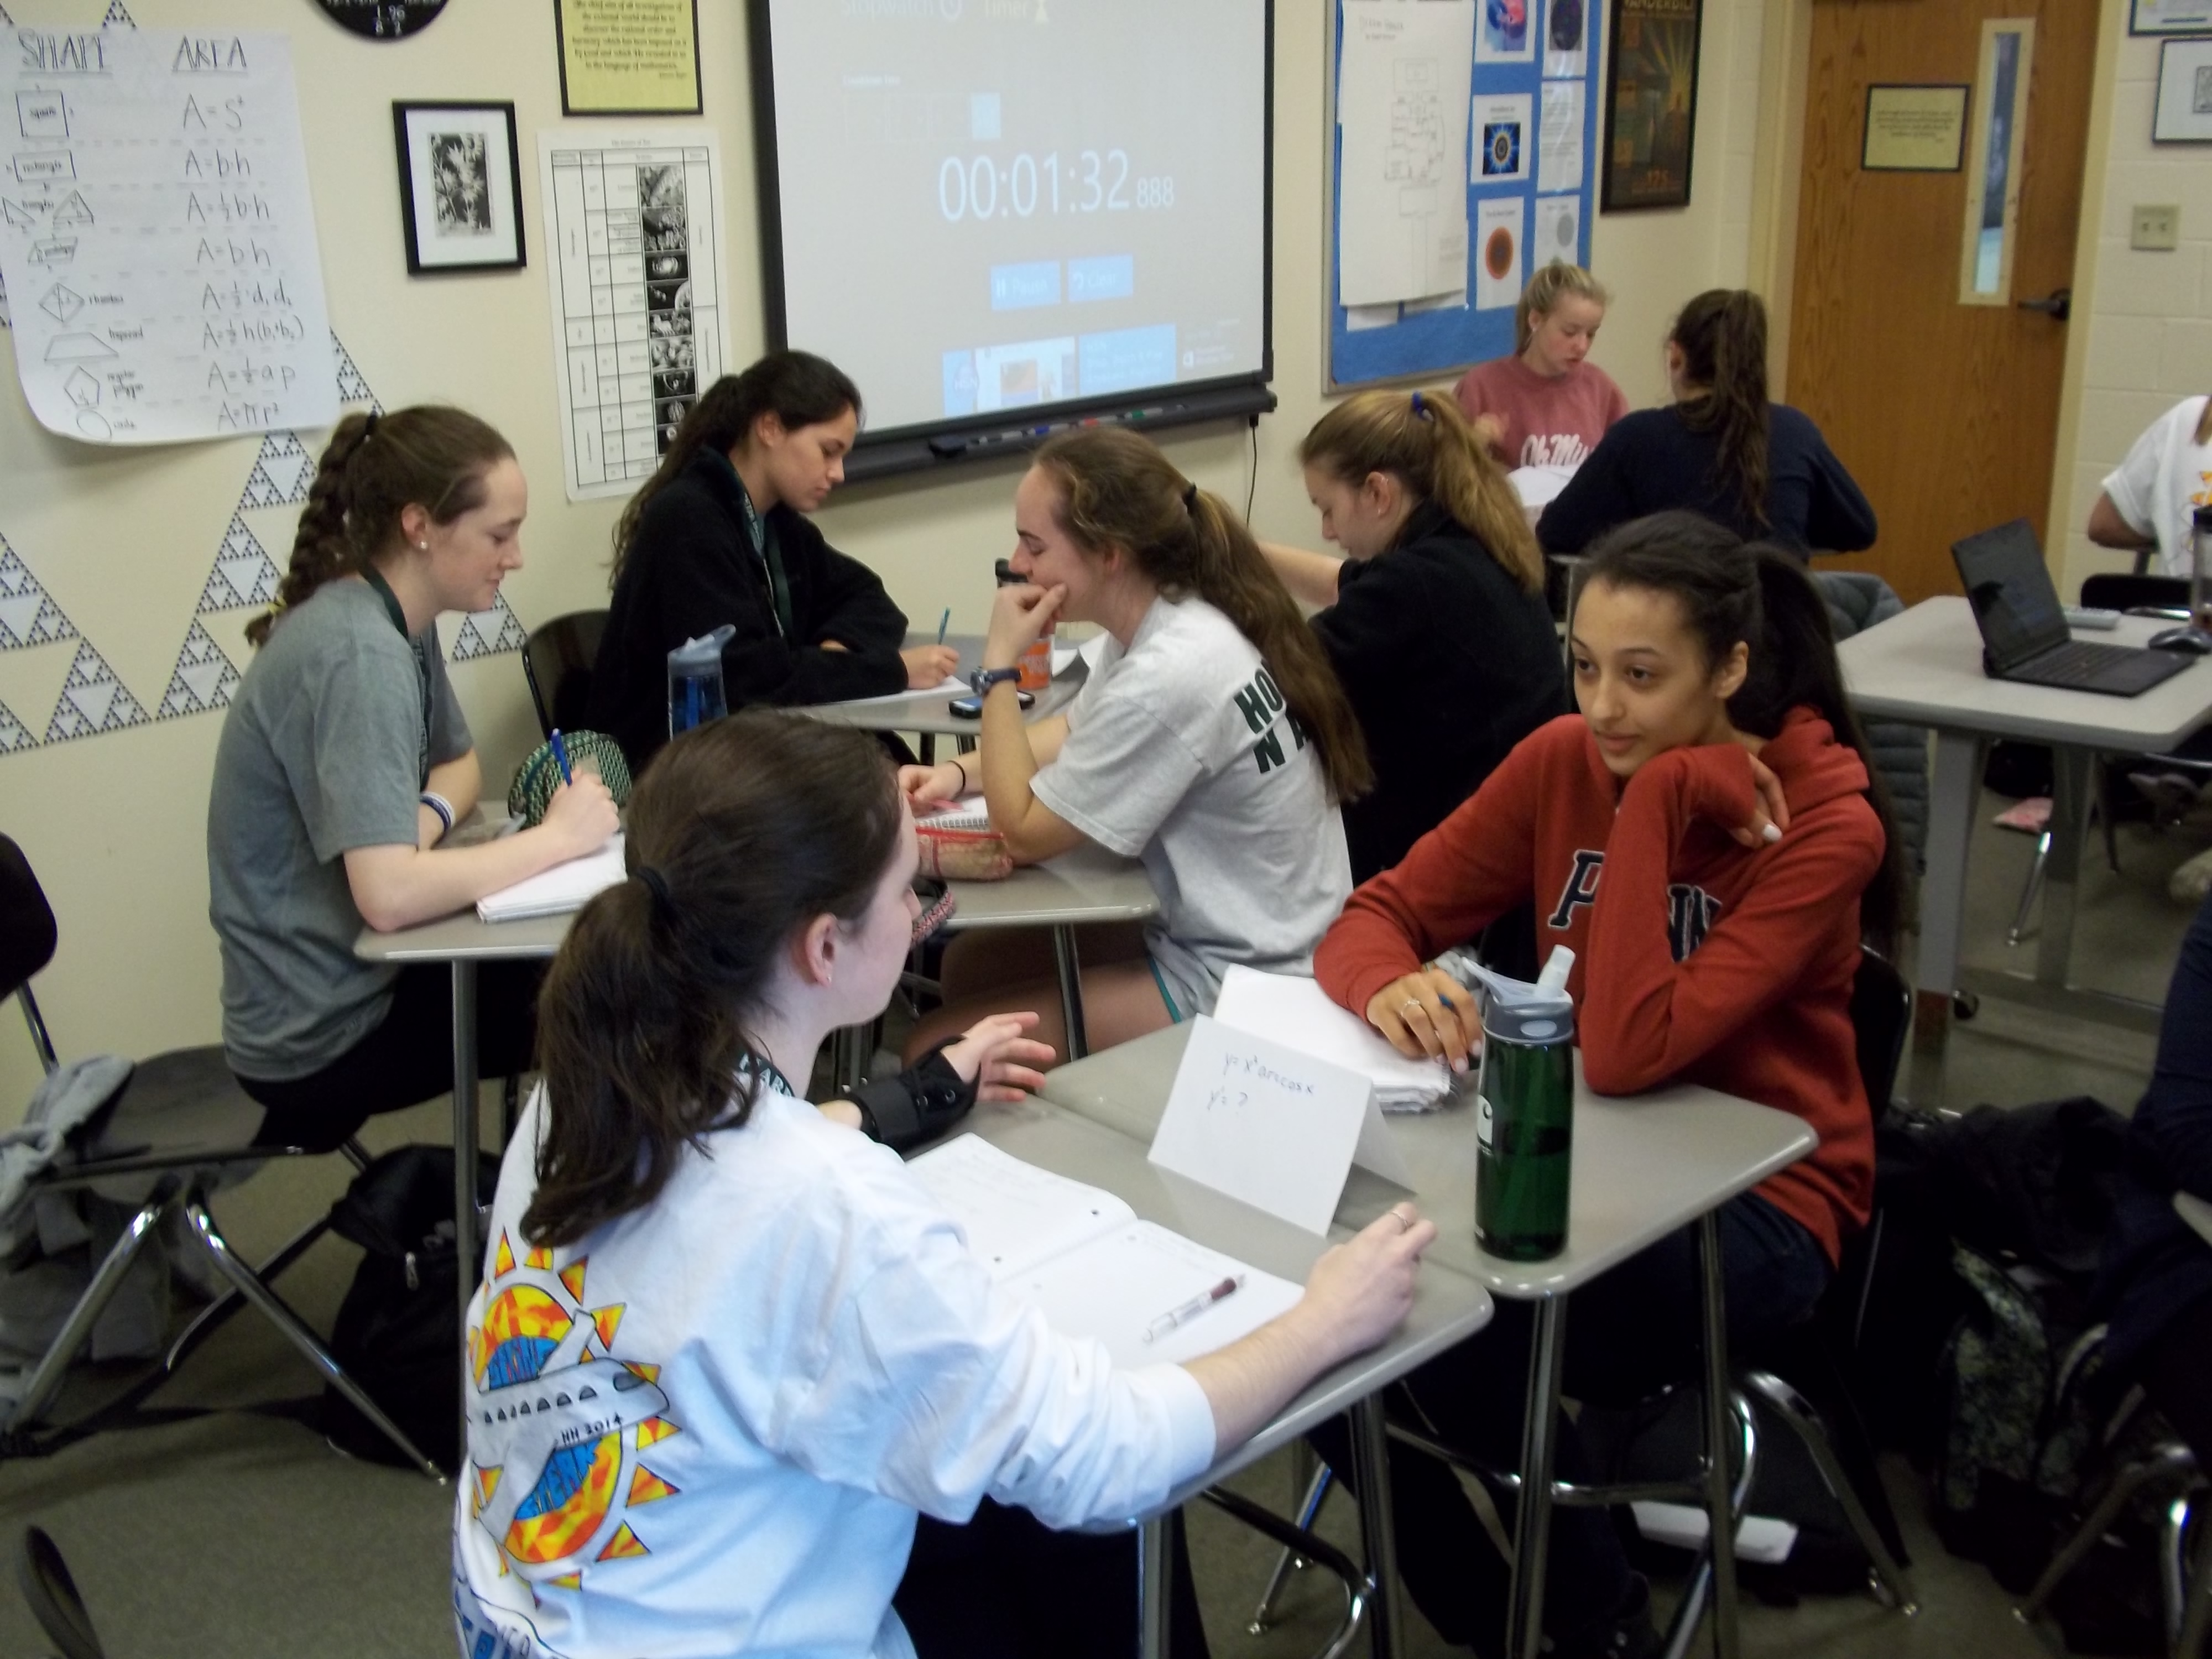 Speed dating activities in the classroom